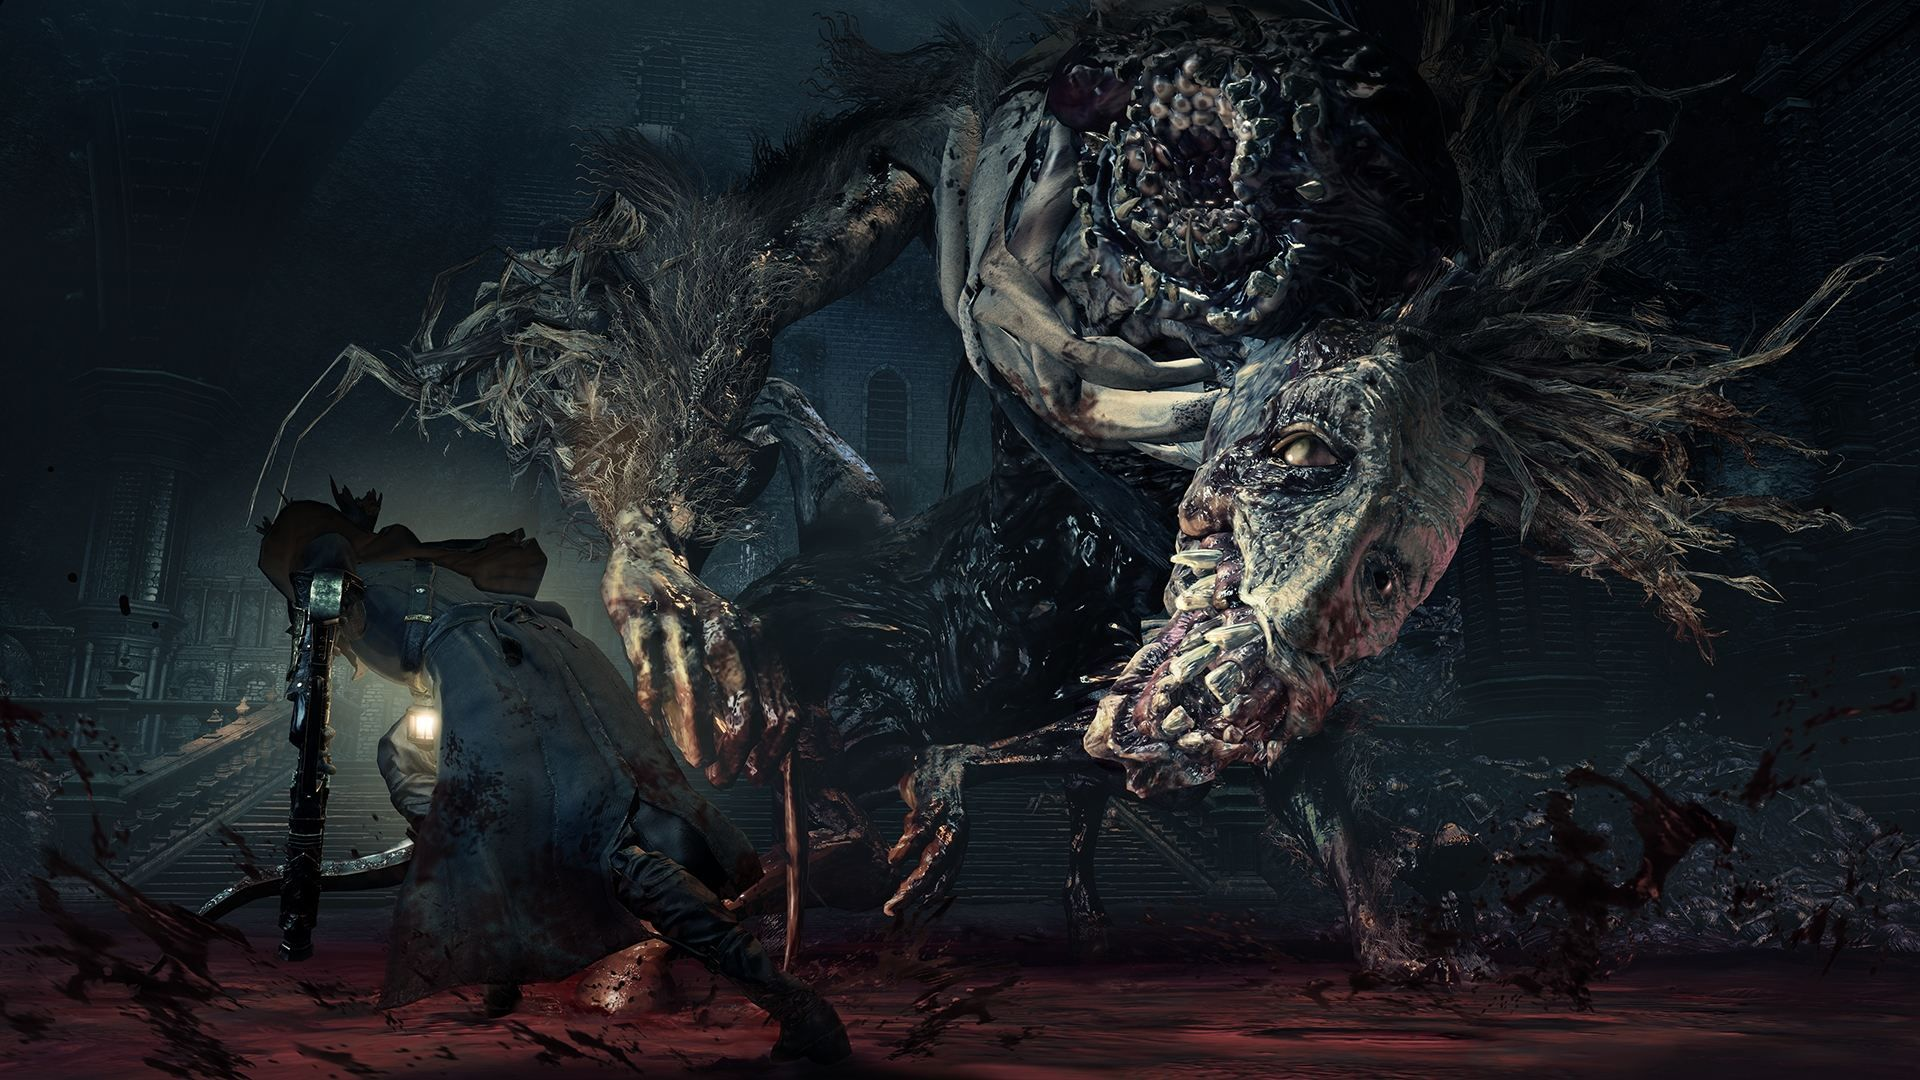 Bloodborne: Game of the Year Edition (PS4) - 11